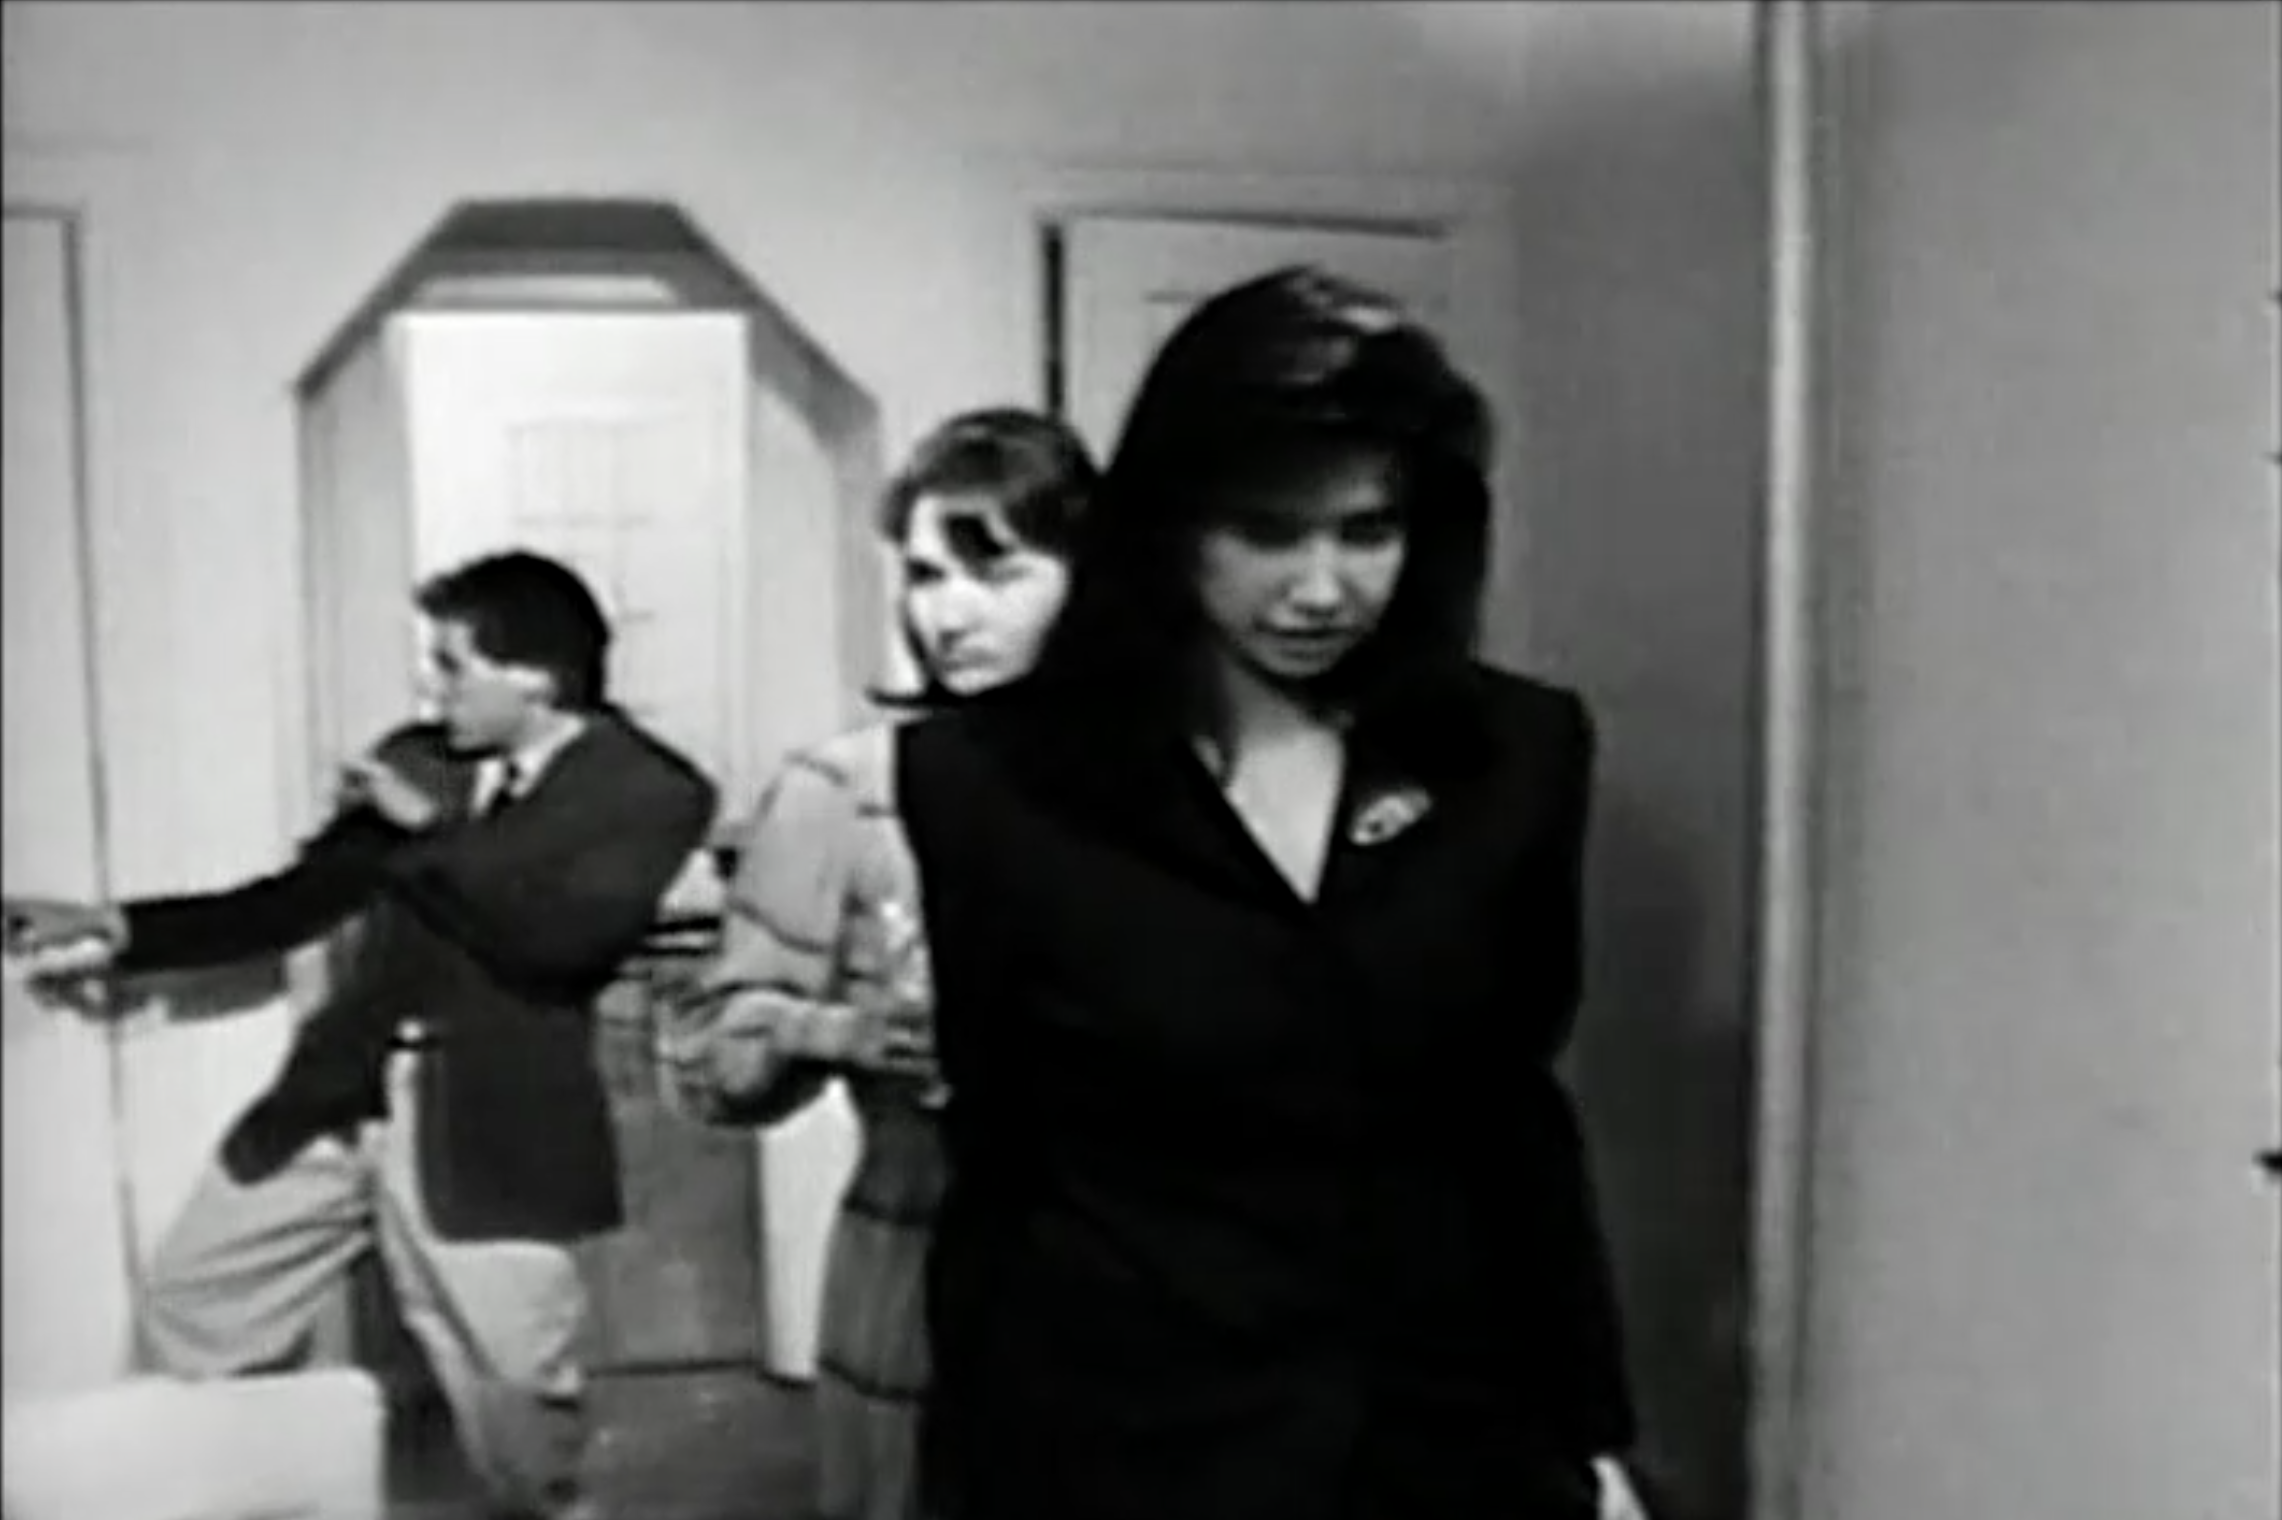 Josh Pais (dancing with himself in the mirror), Mary Carol Johnson and Lea Floden